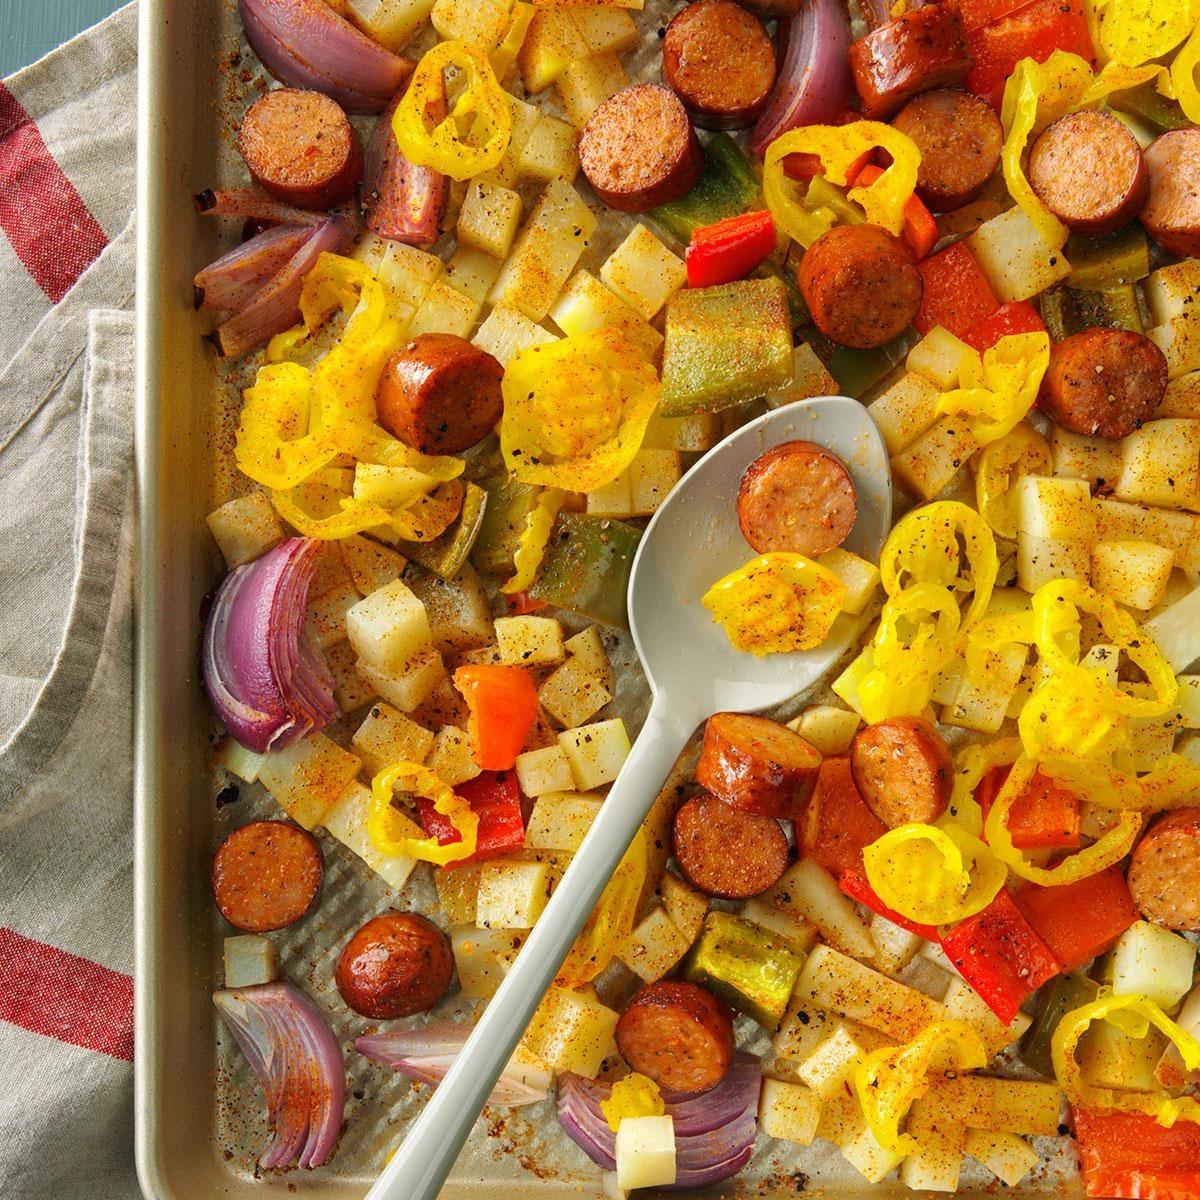 Mississippi: Spicy Roasted Sausage, Potatoes and Peppers